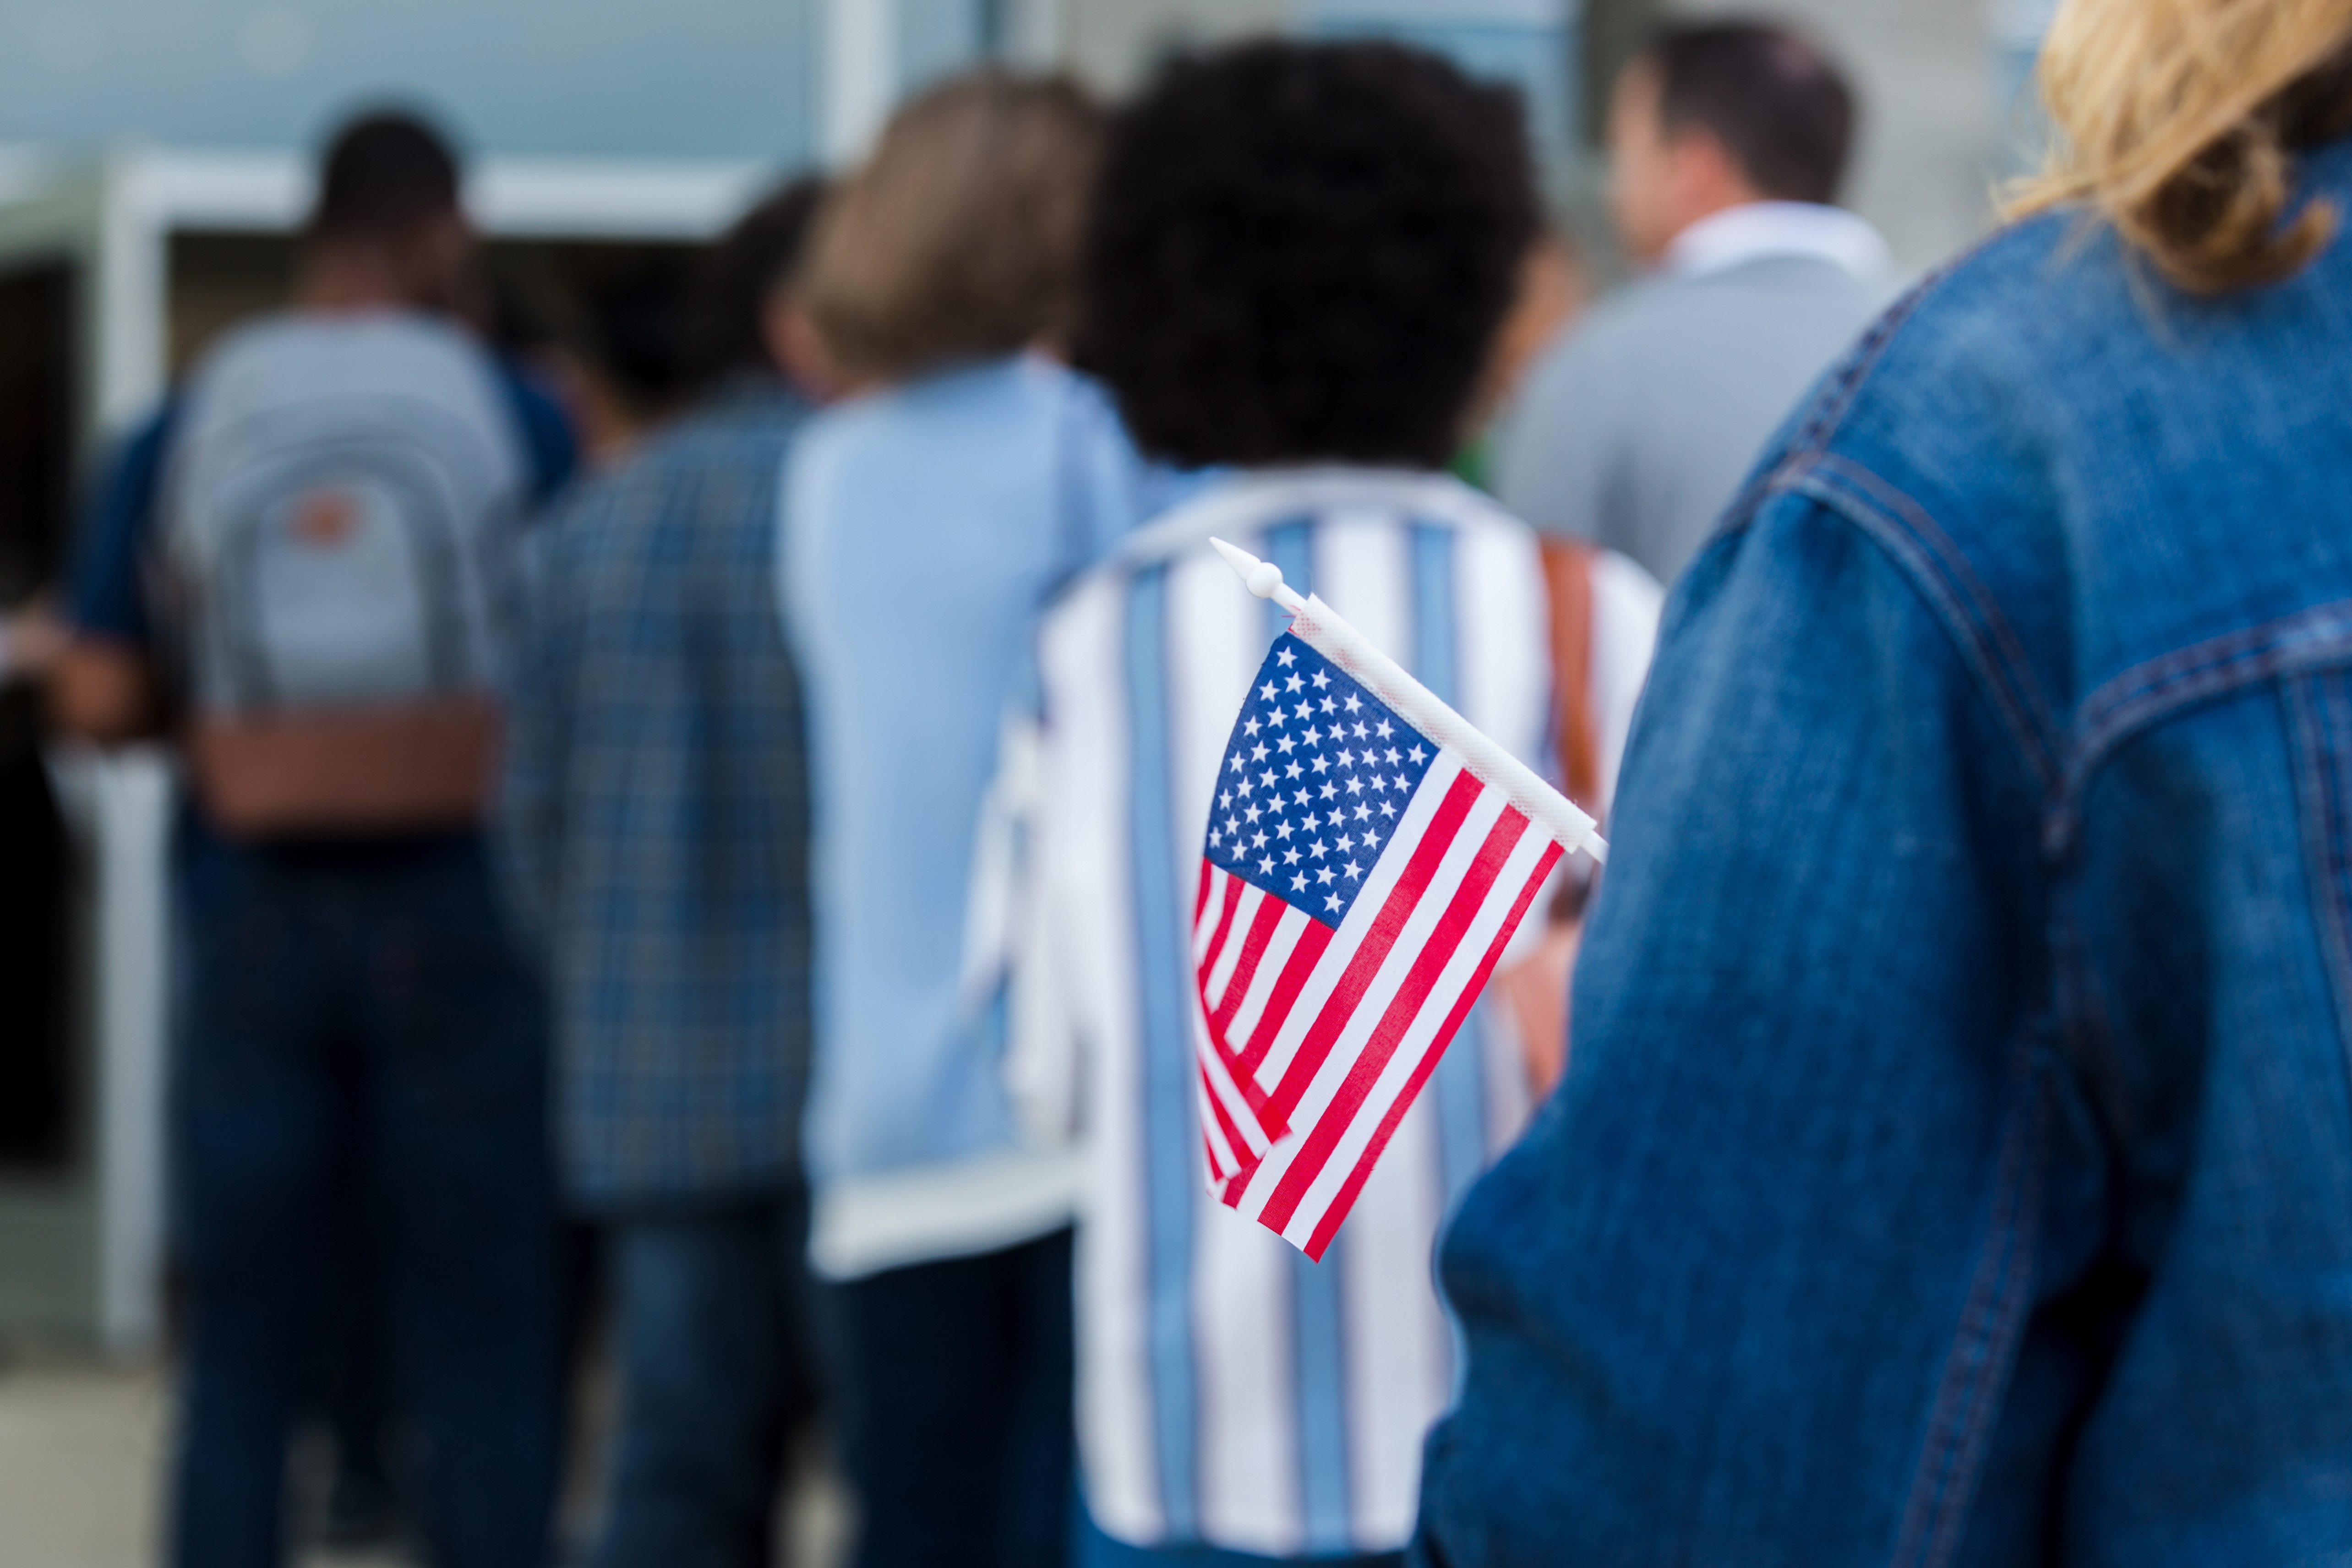 A person in line at a polling place holds a small American flag.